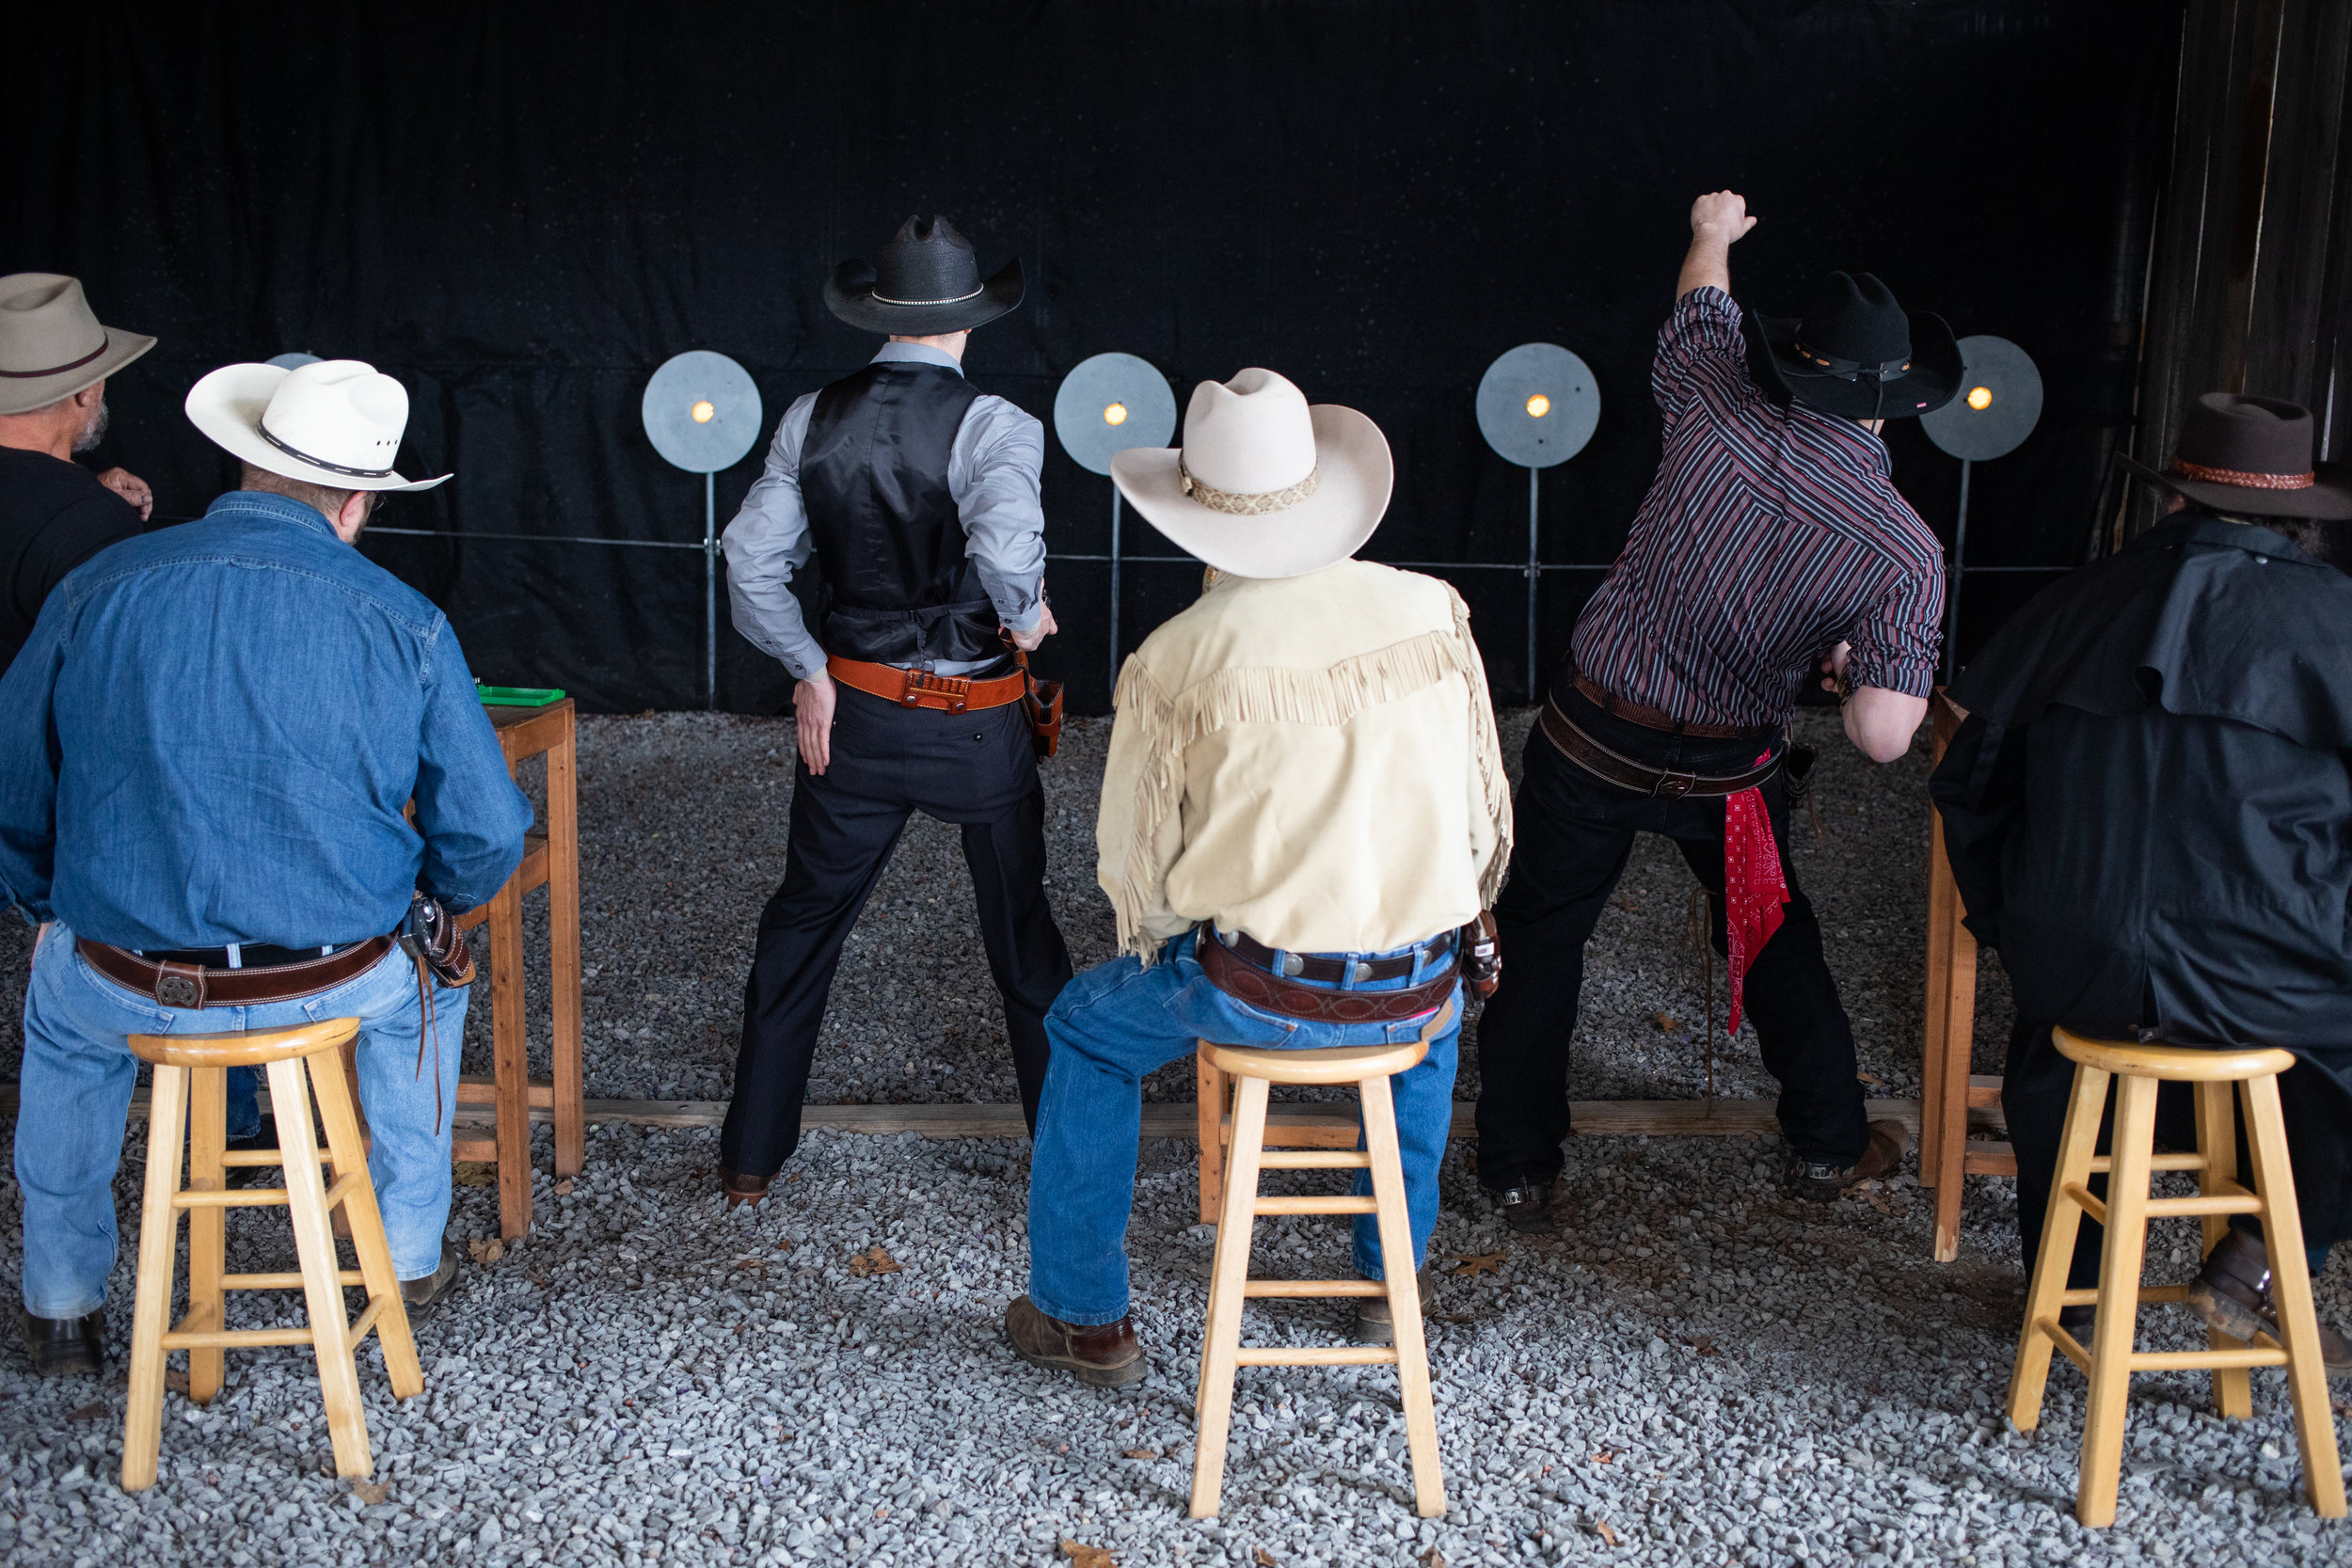 Cowboys during a round of the Grandview Gunslingers Cowboy Fastdraw Tournament in Bedford, VA. The Gunslingers are a Sanctioned Club for the Cowboy Fast Draw Association with headquarters in Fallon, Nevada.